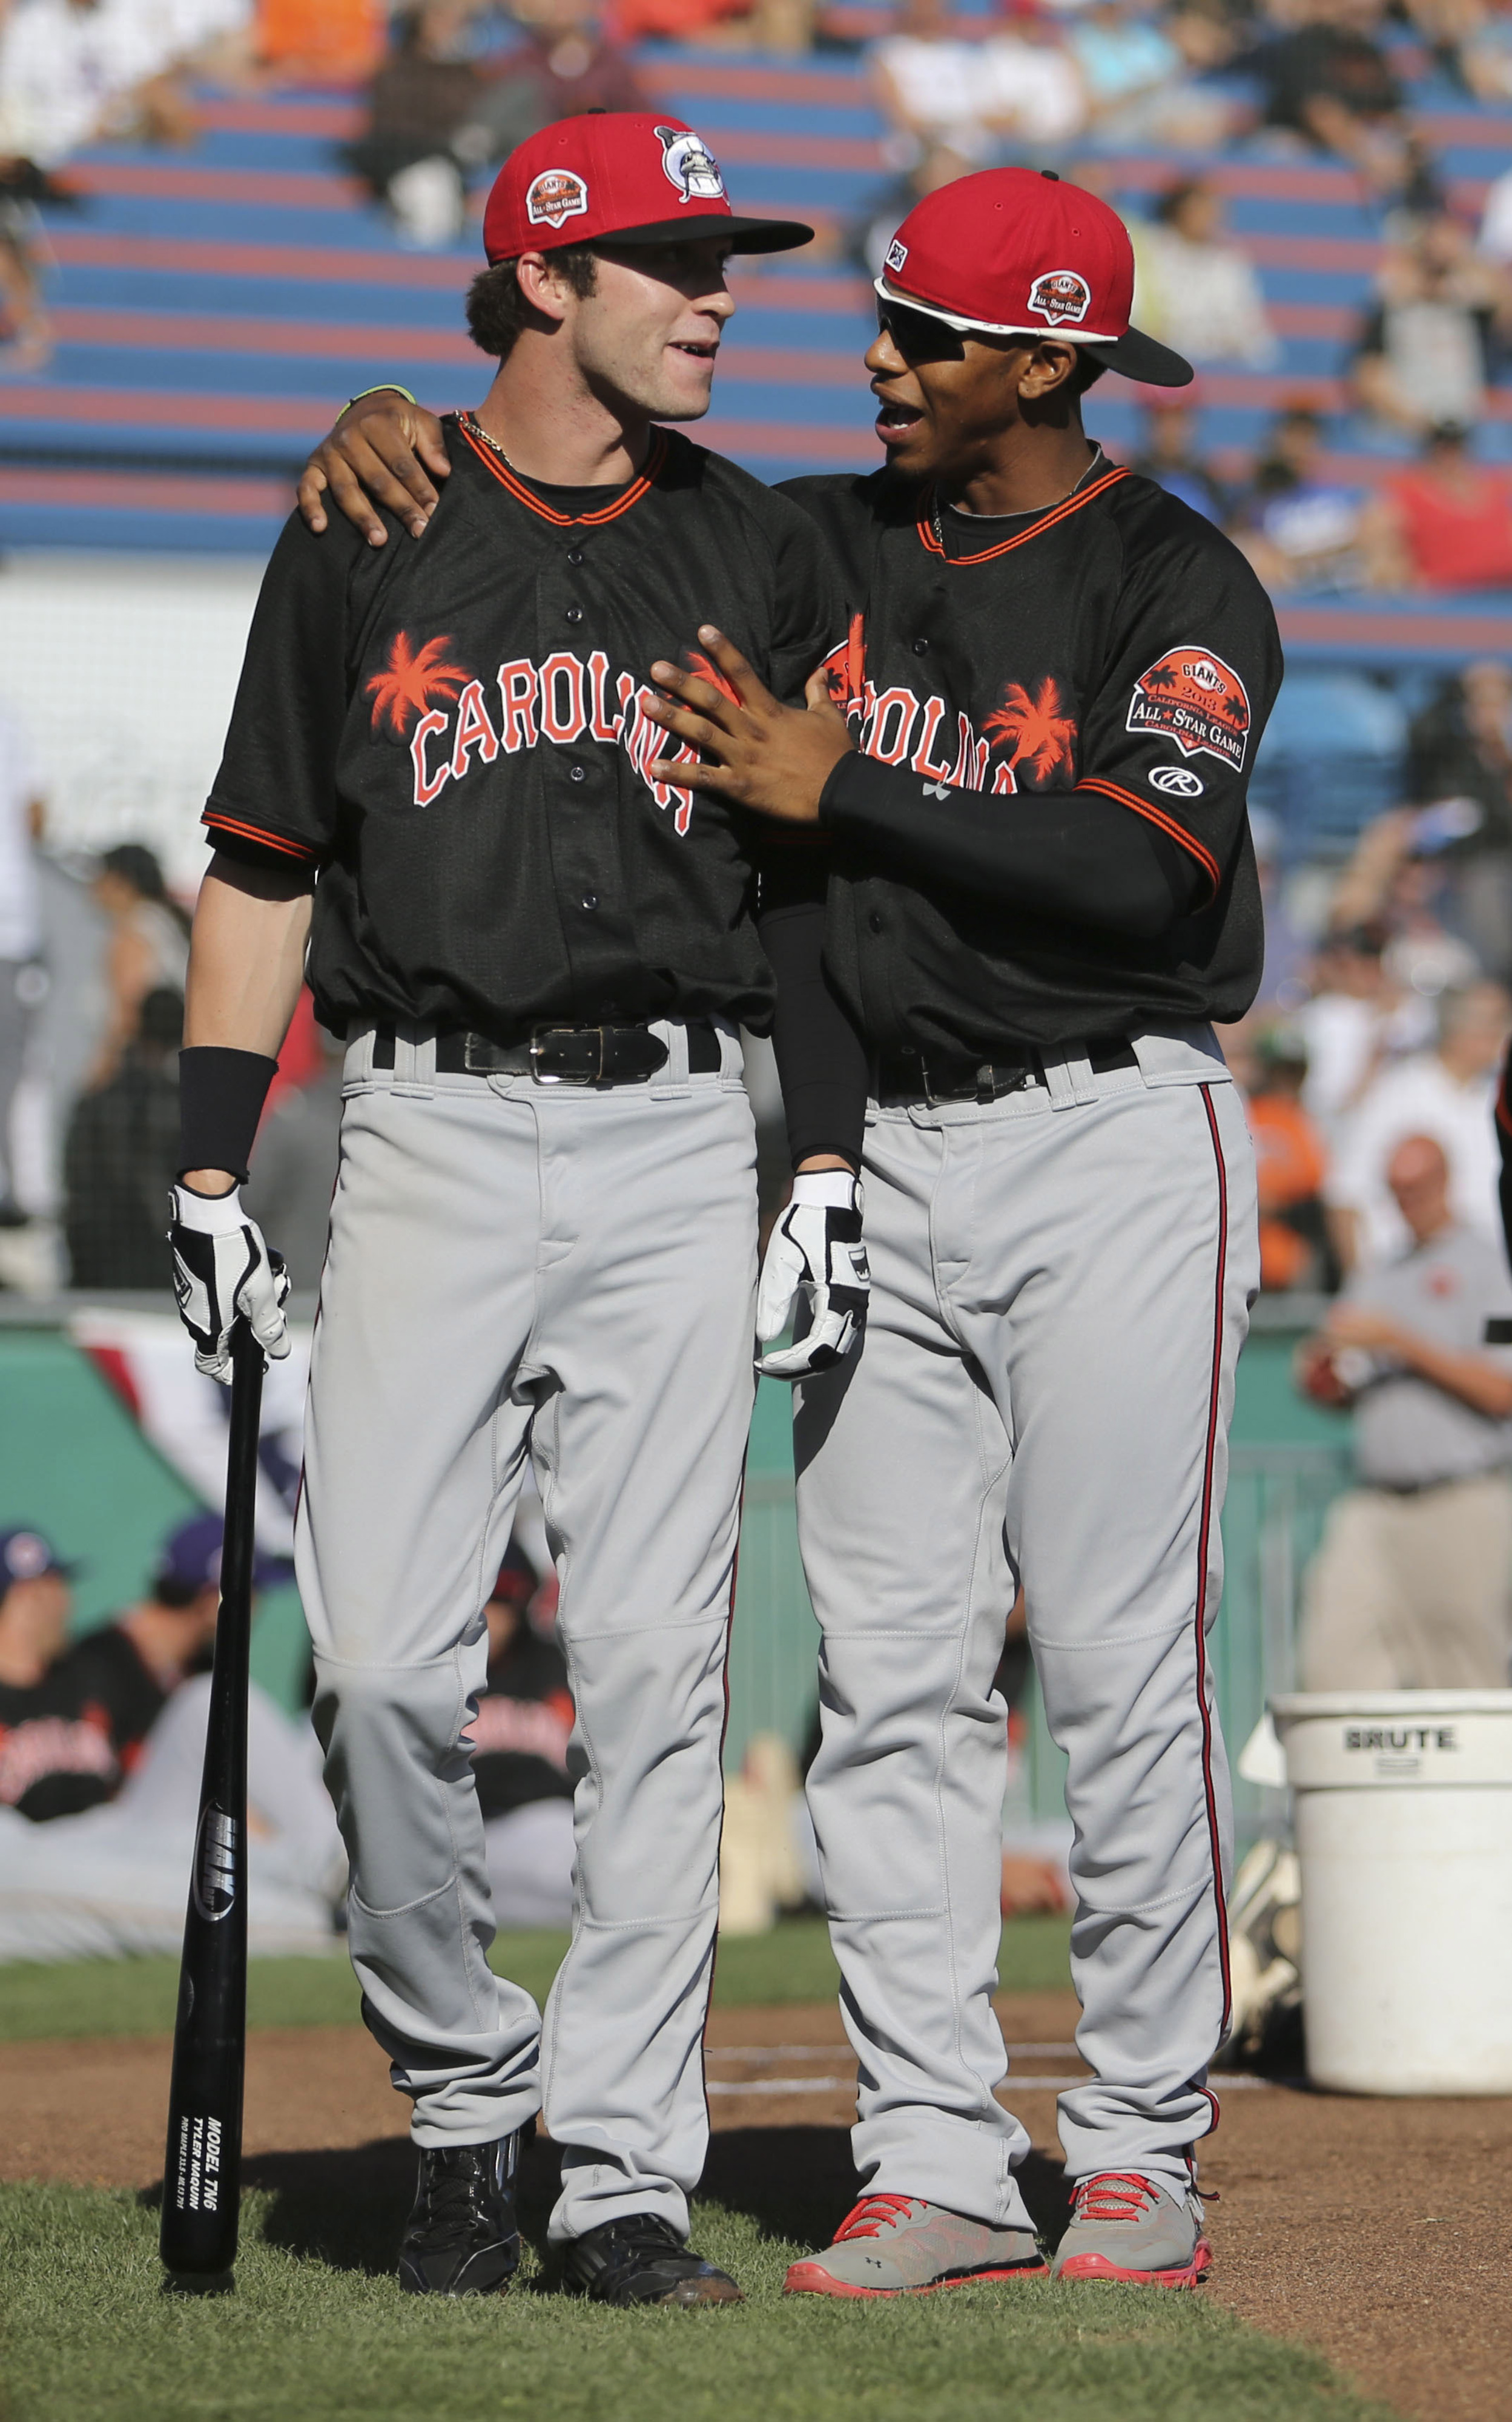 Tyler Naquin (left) and Francisco Lindor (right)